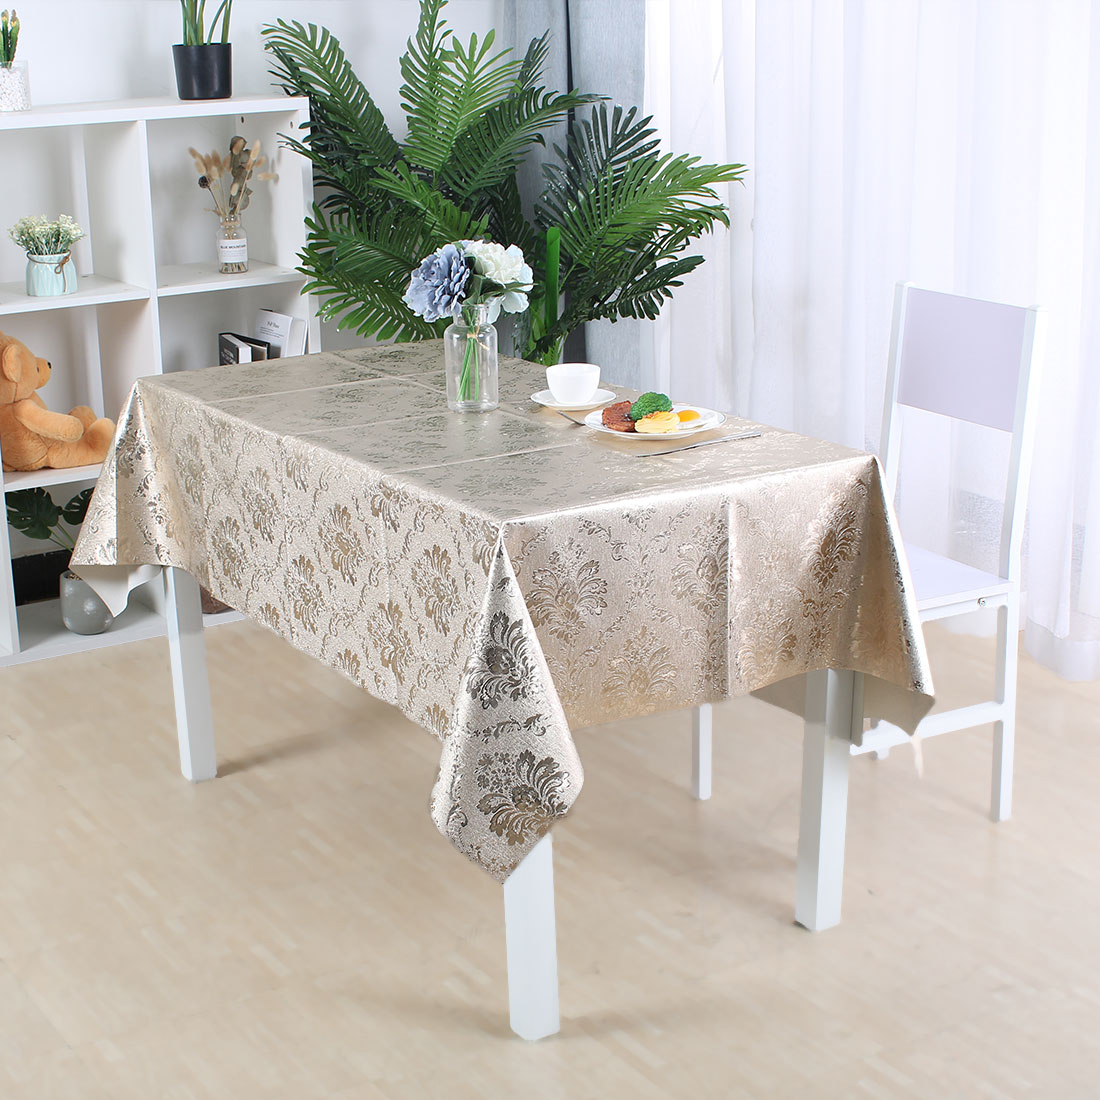 """Tablecloth PVC Vinyl Oil Stain Resistant Party Camping Table Cloth 54""""x54"""", #1 - image 7 de 7"""